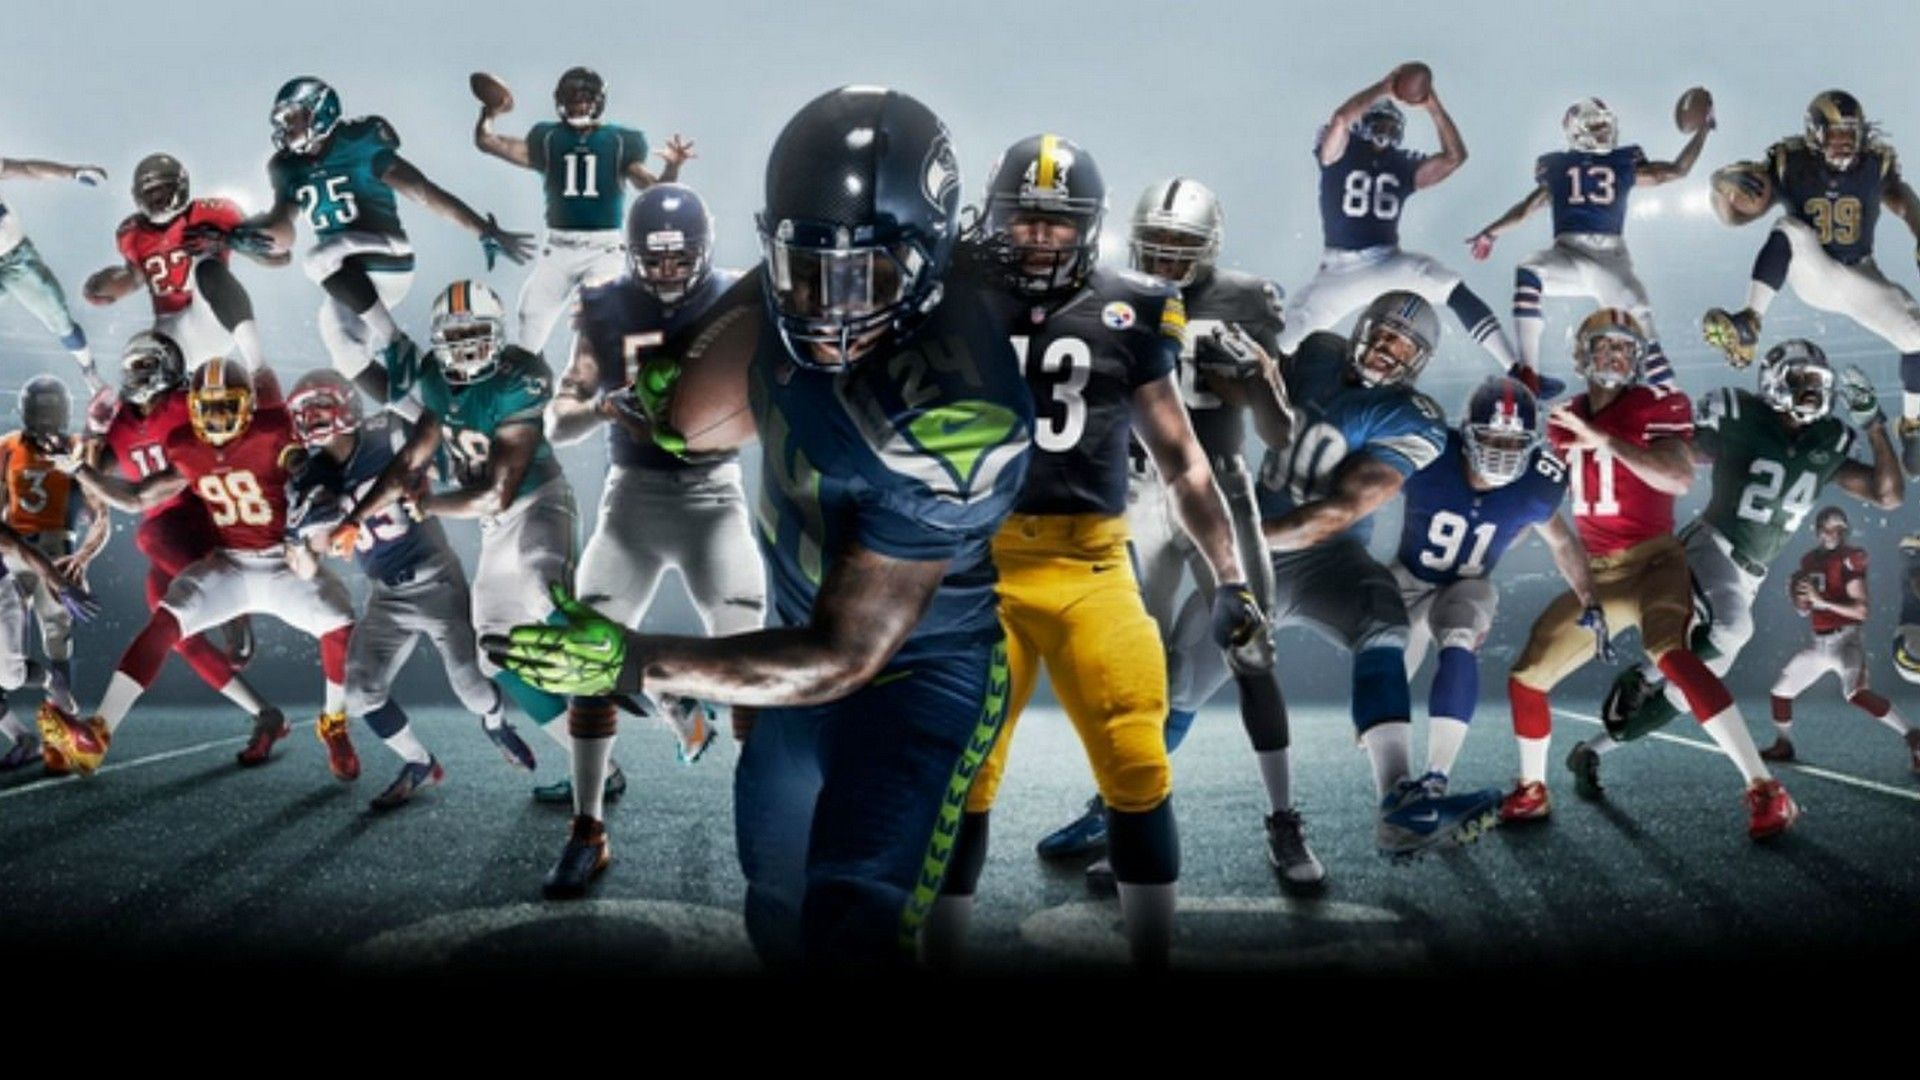 Wallpapers Cool NFL 2021 NFL Football Wallpapers Football 1920x1080